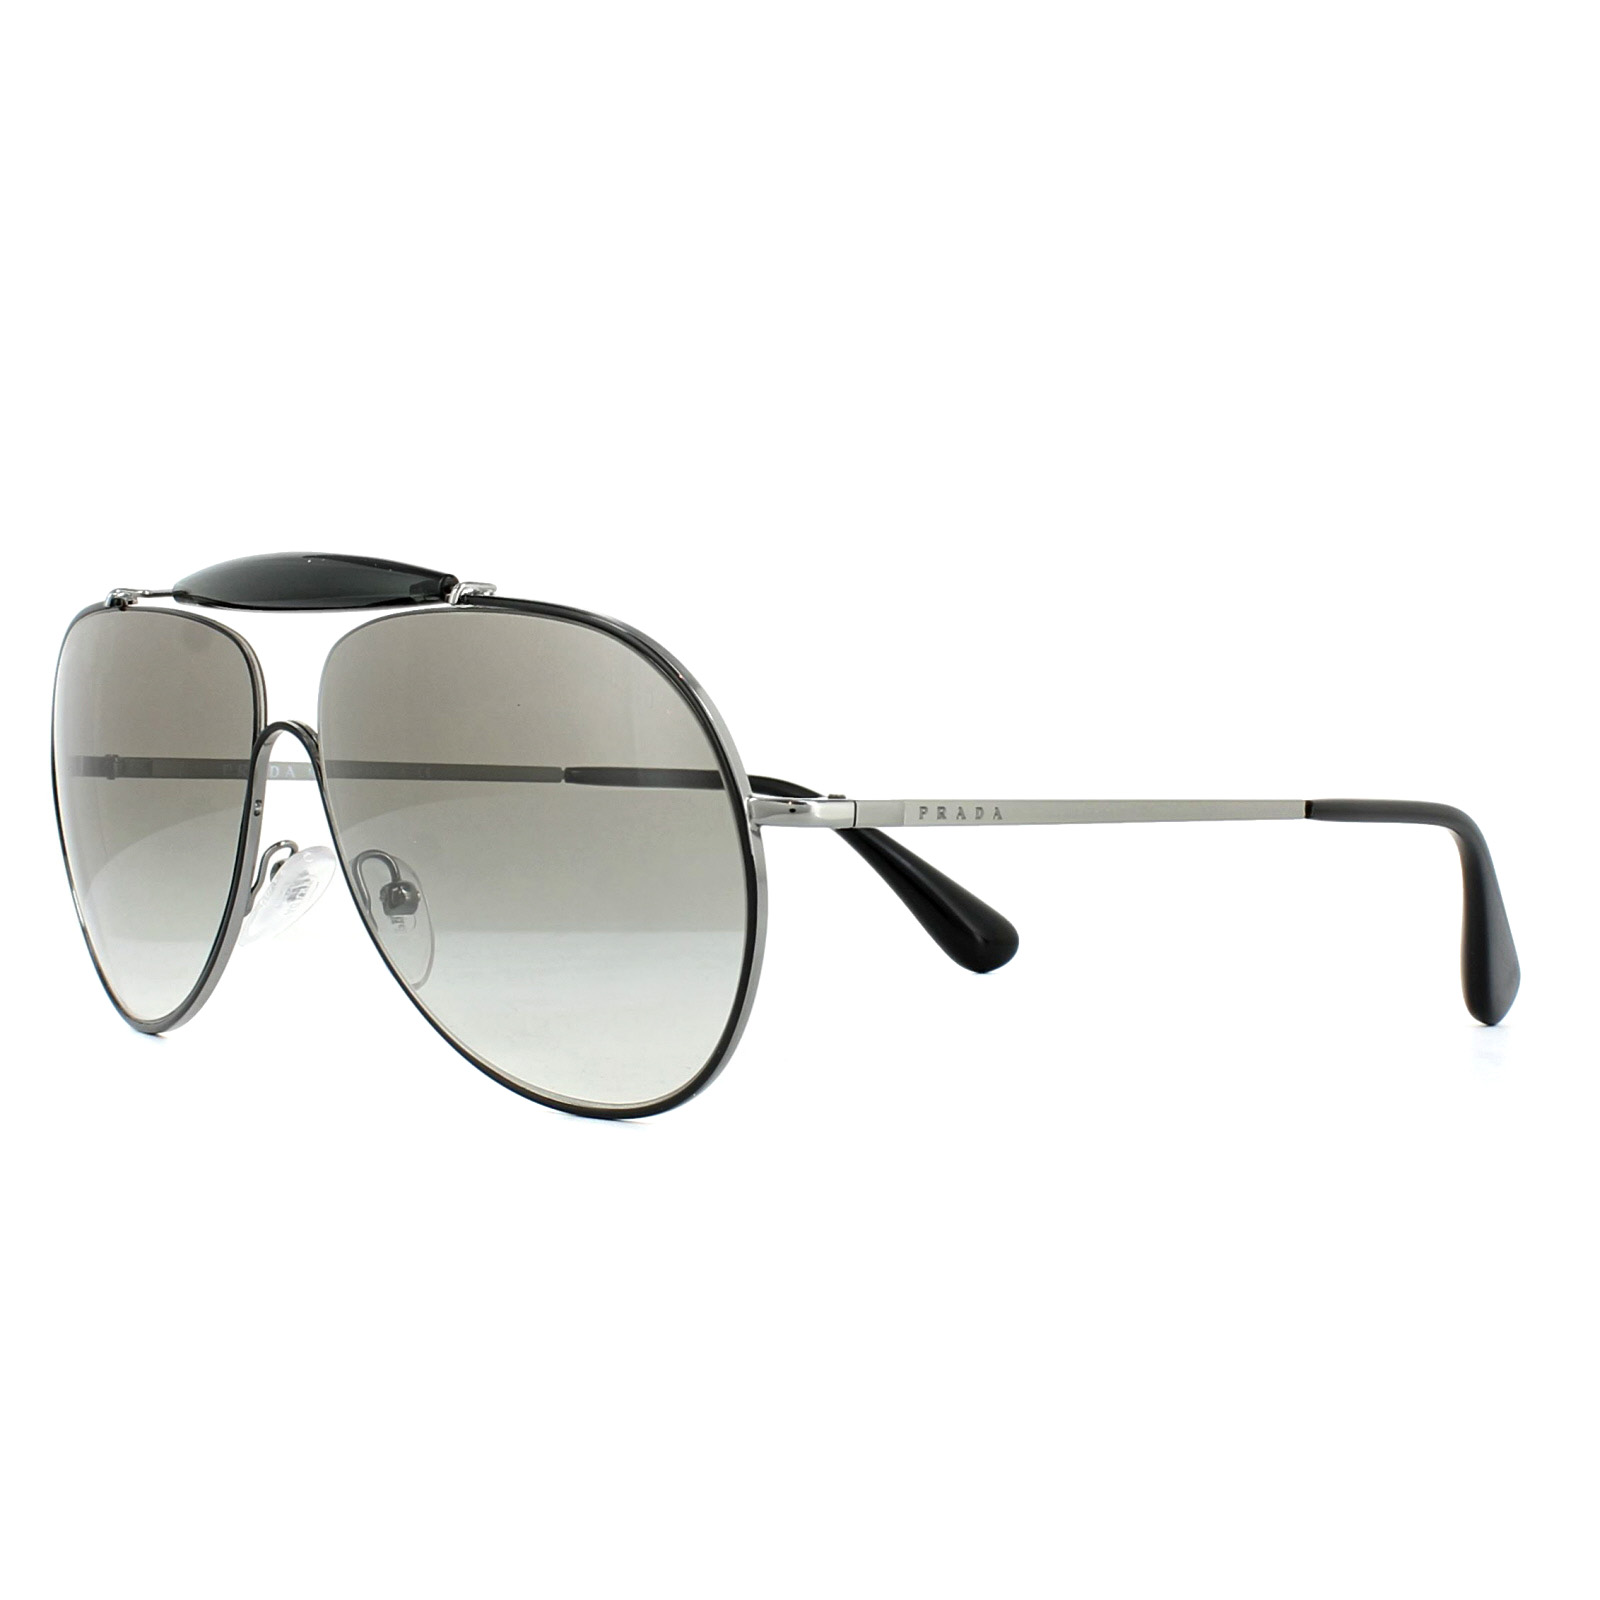 c86a10d624b8a ... norway sentinel prada sunglasses 56ss 7ax5o0 top black gunmetal grey  gradient a62a9 08a0d